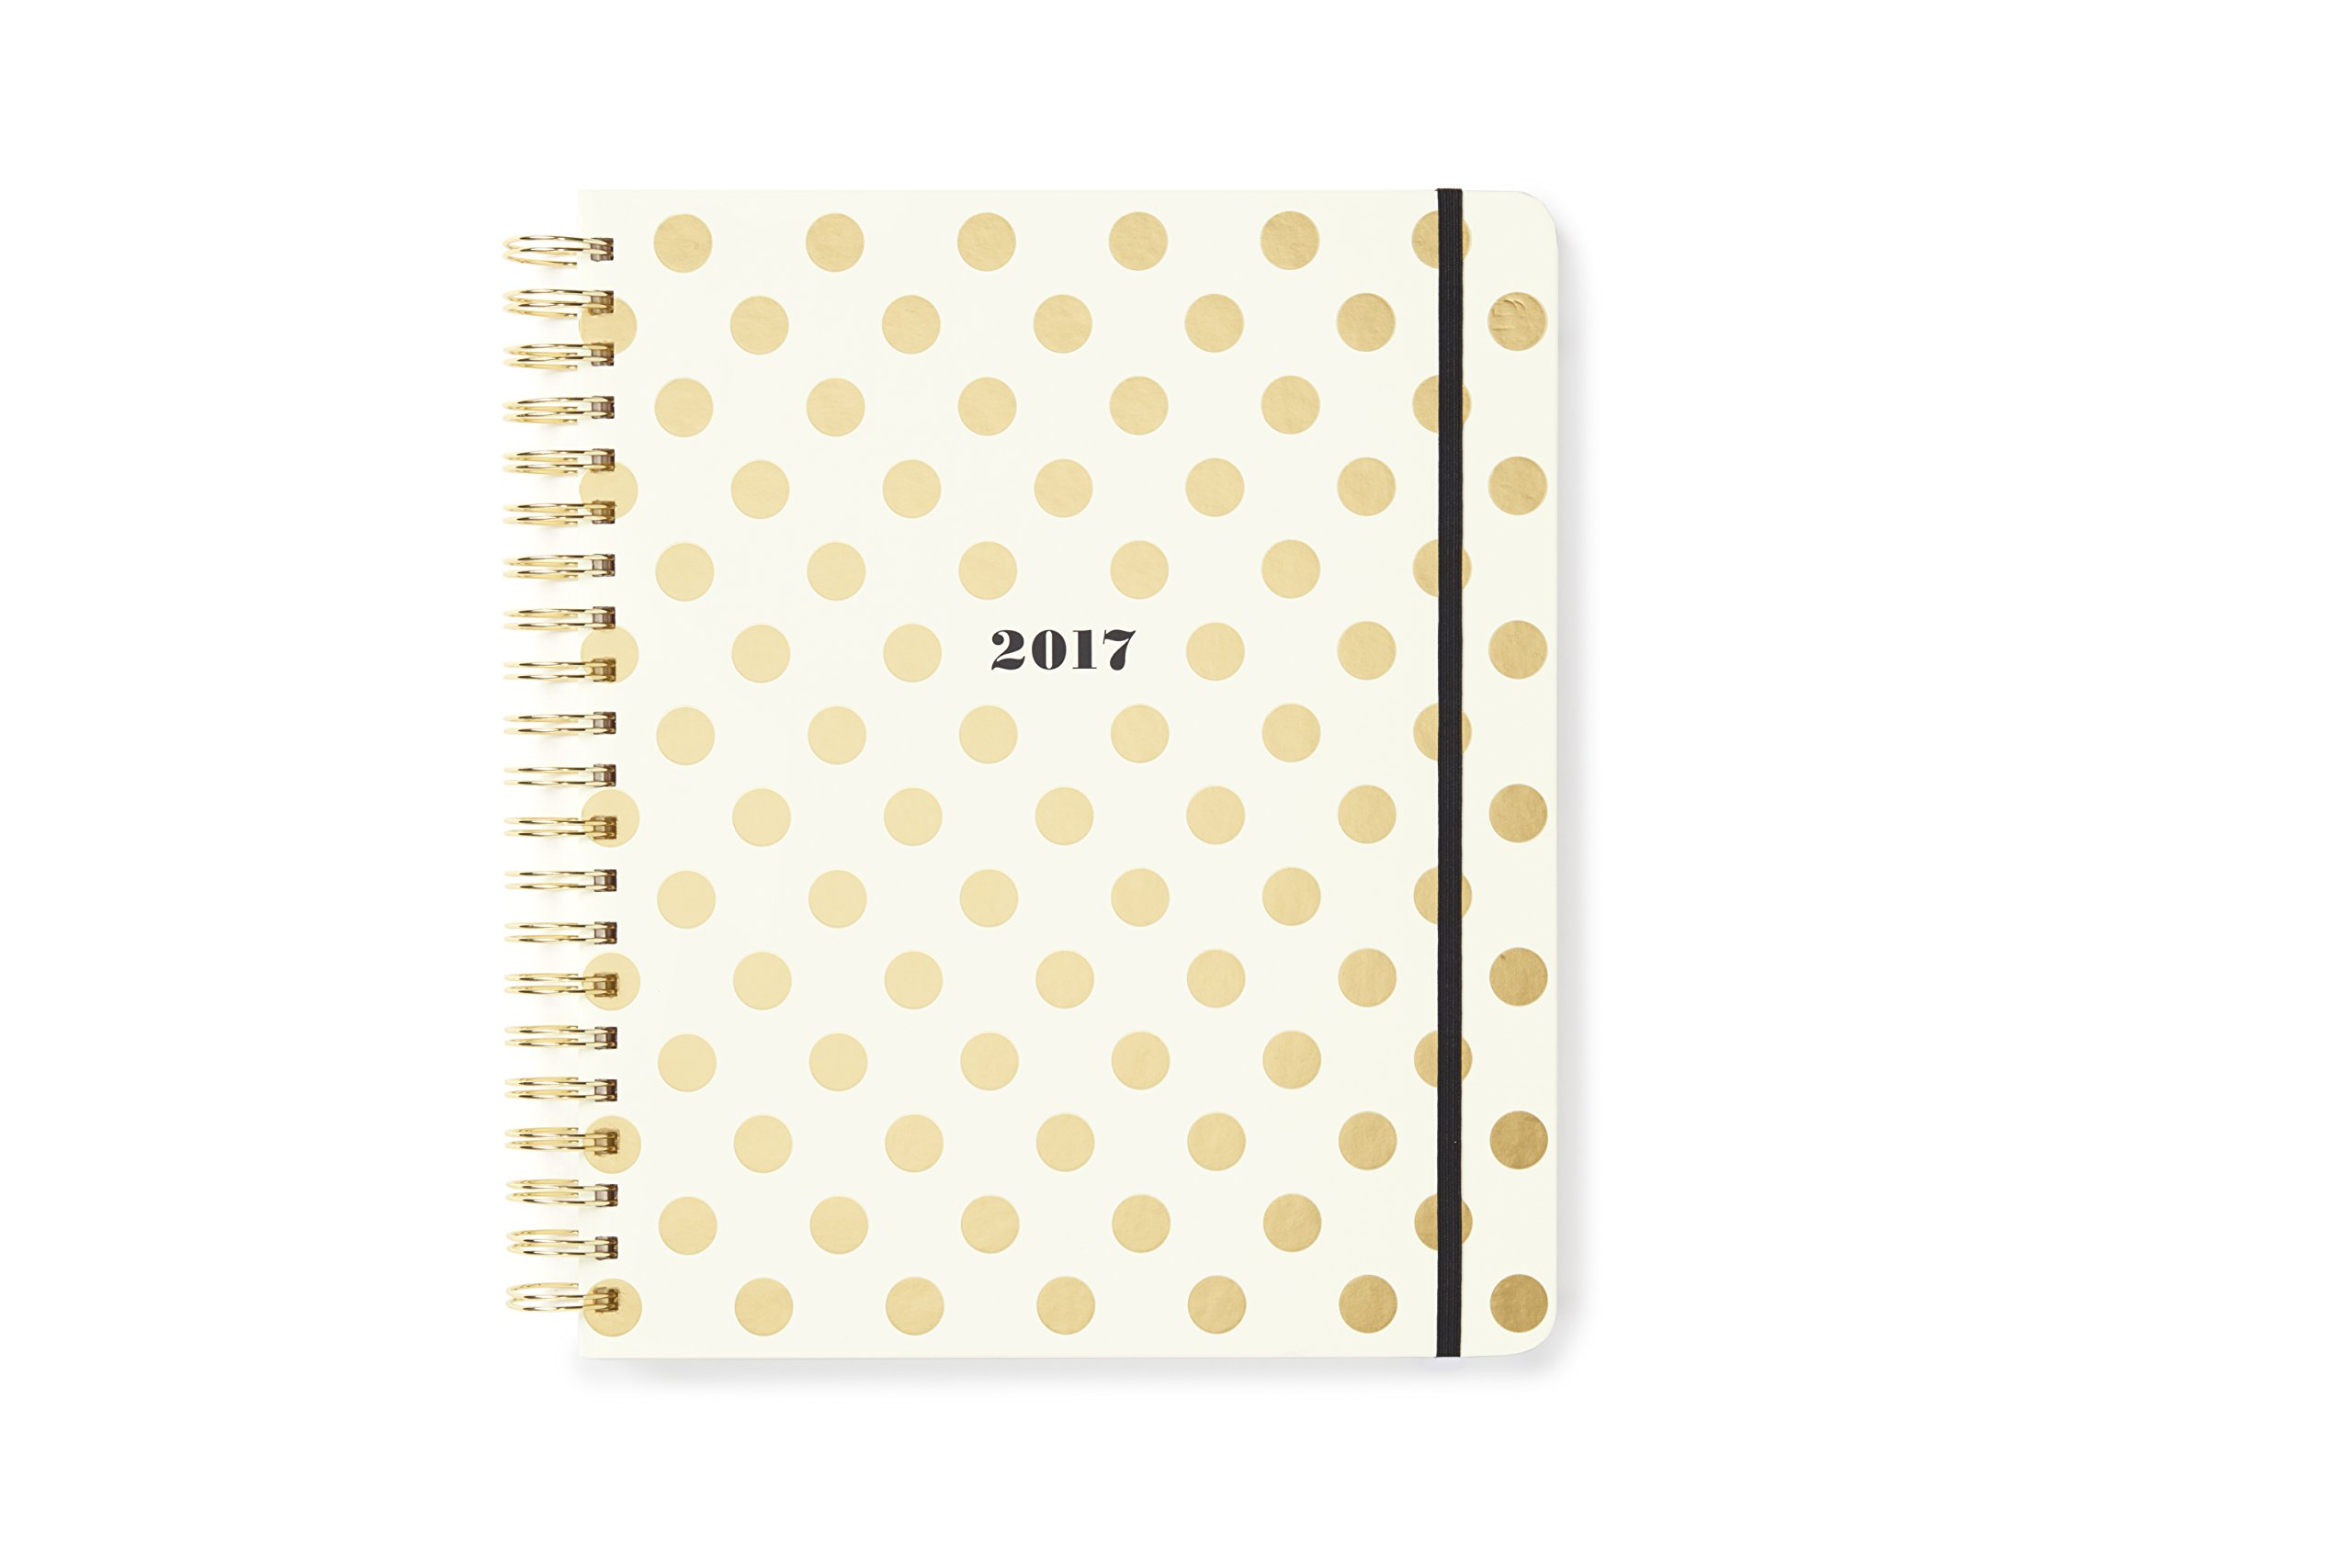 kate spade new york Conceal Sprial 2016-17 Jumbo Spiral Agenda, Gold Dots by Kate Spade New York